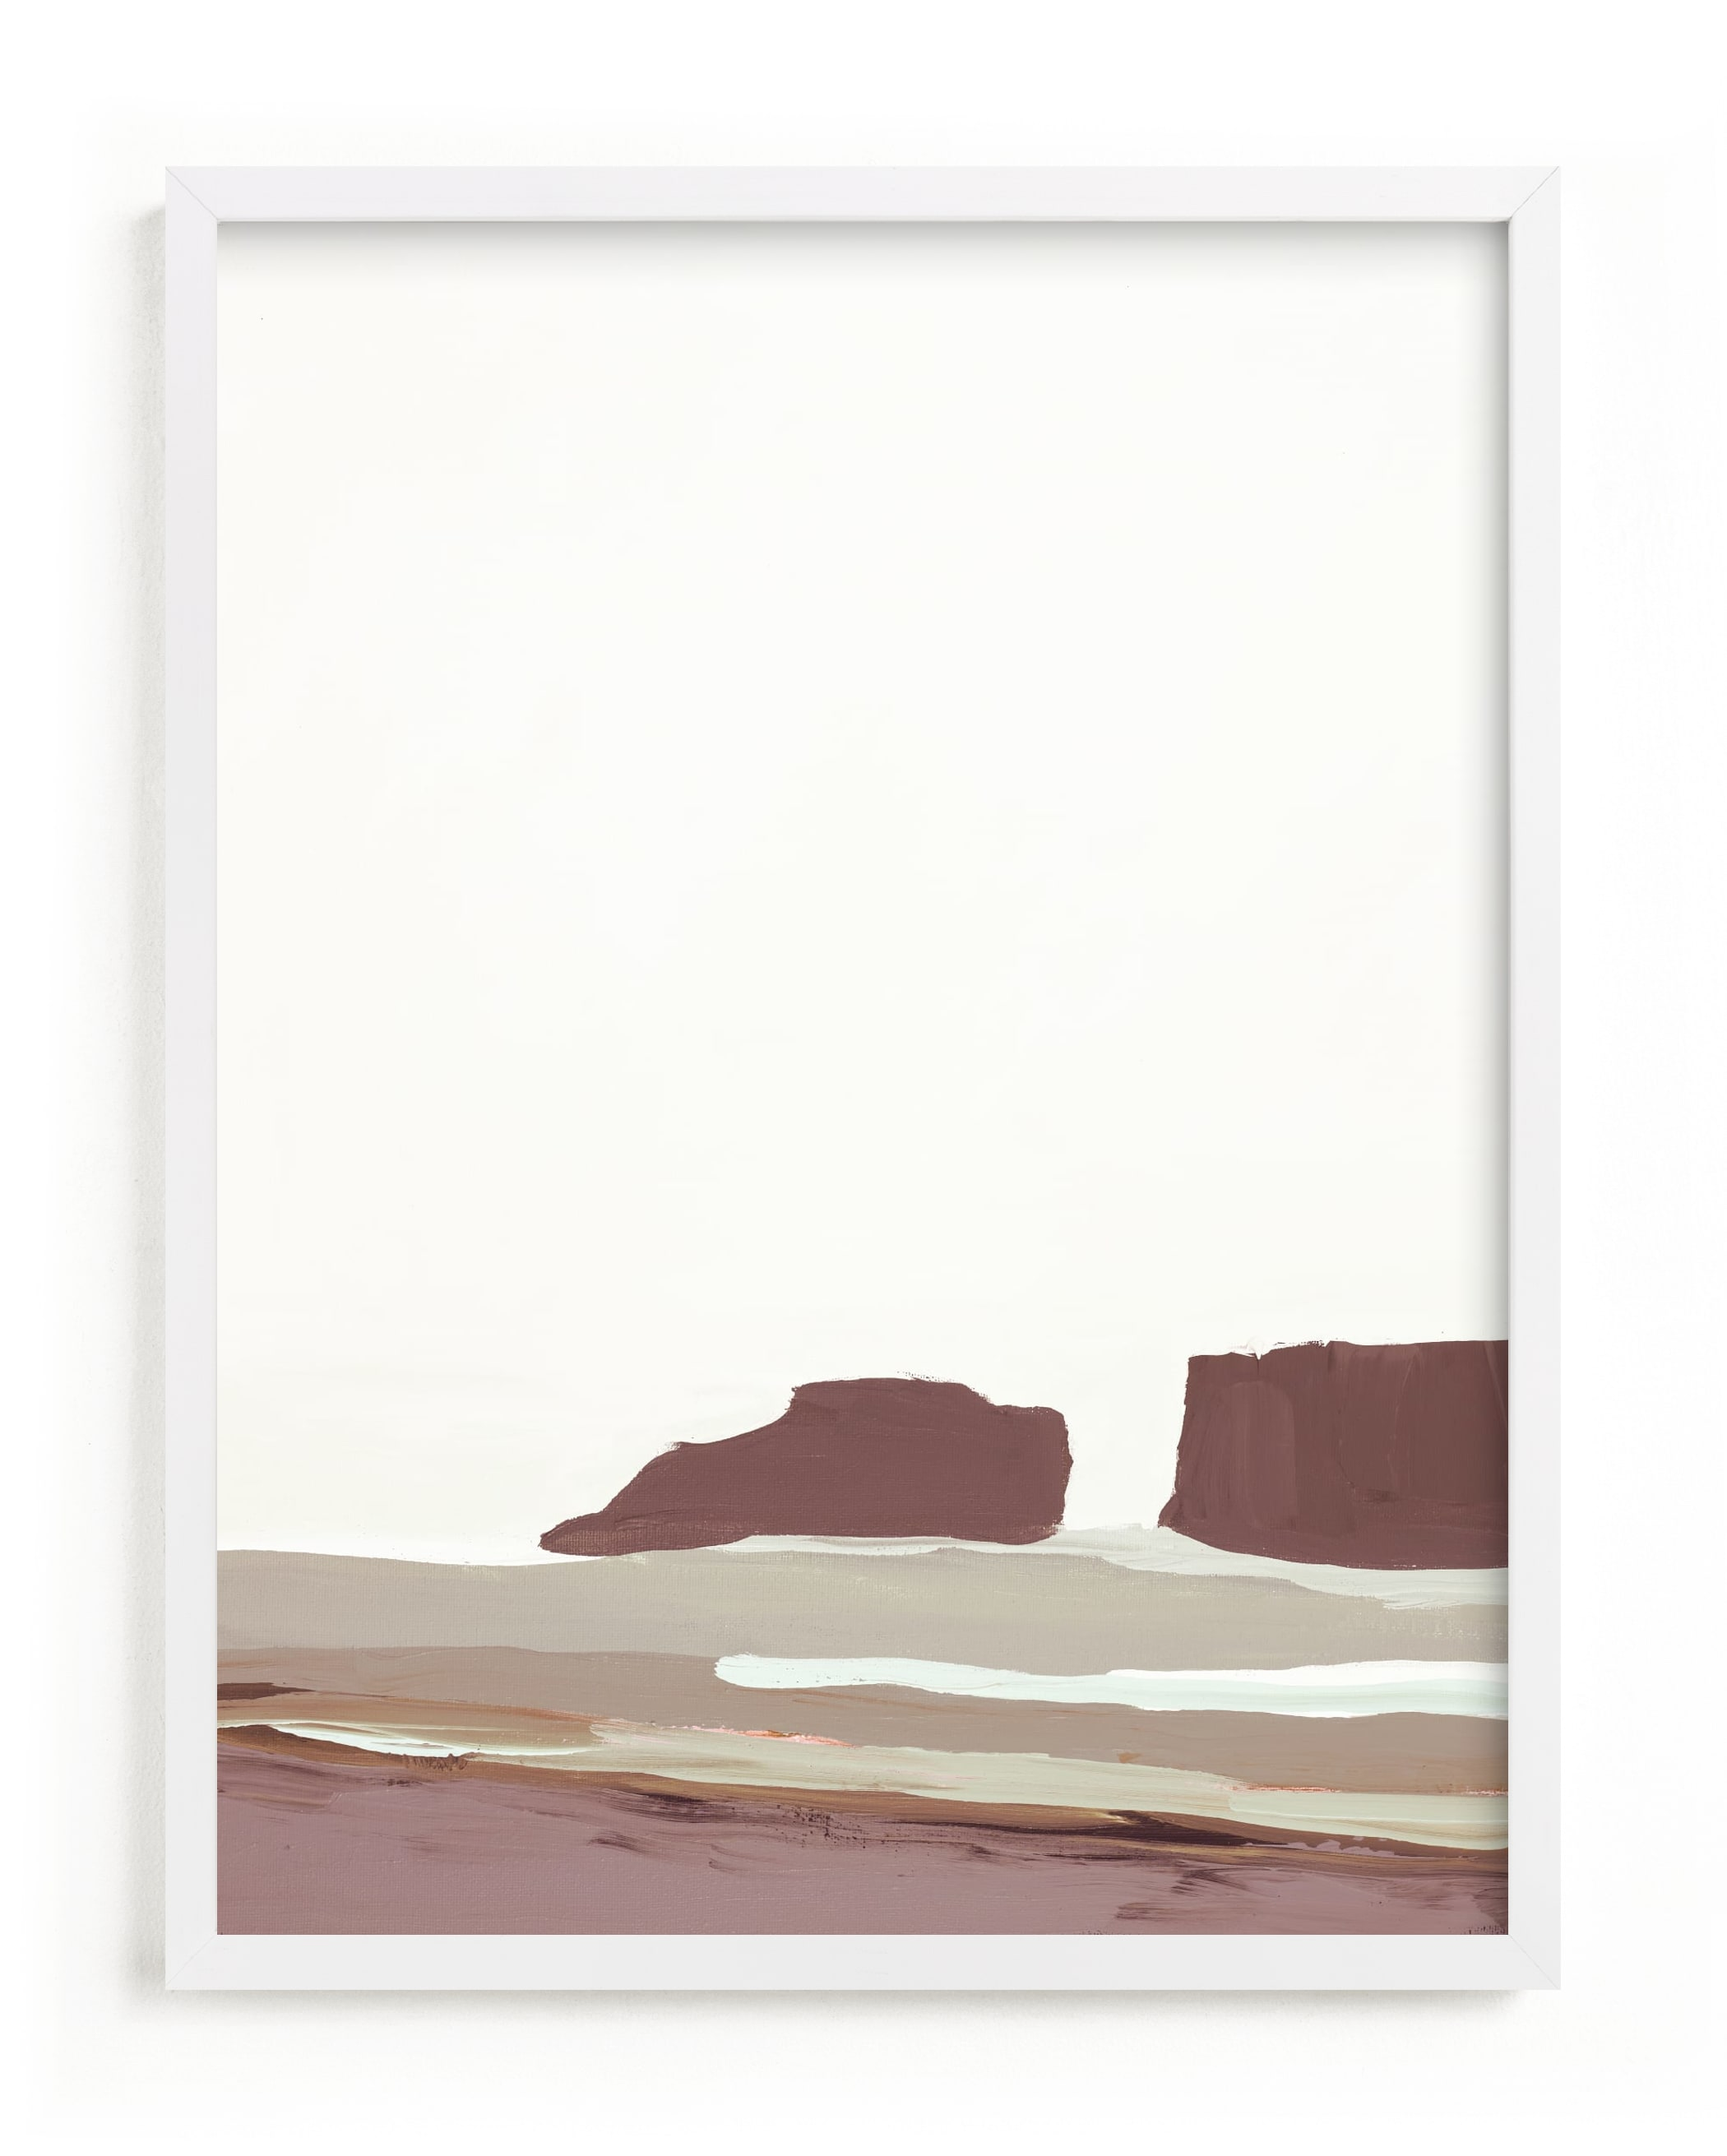 This is a ivory art by Caryn Owen called Abstract Pacific Seascape Diptych 1.